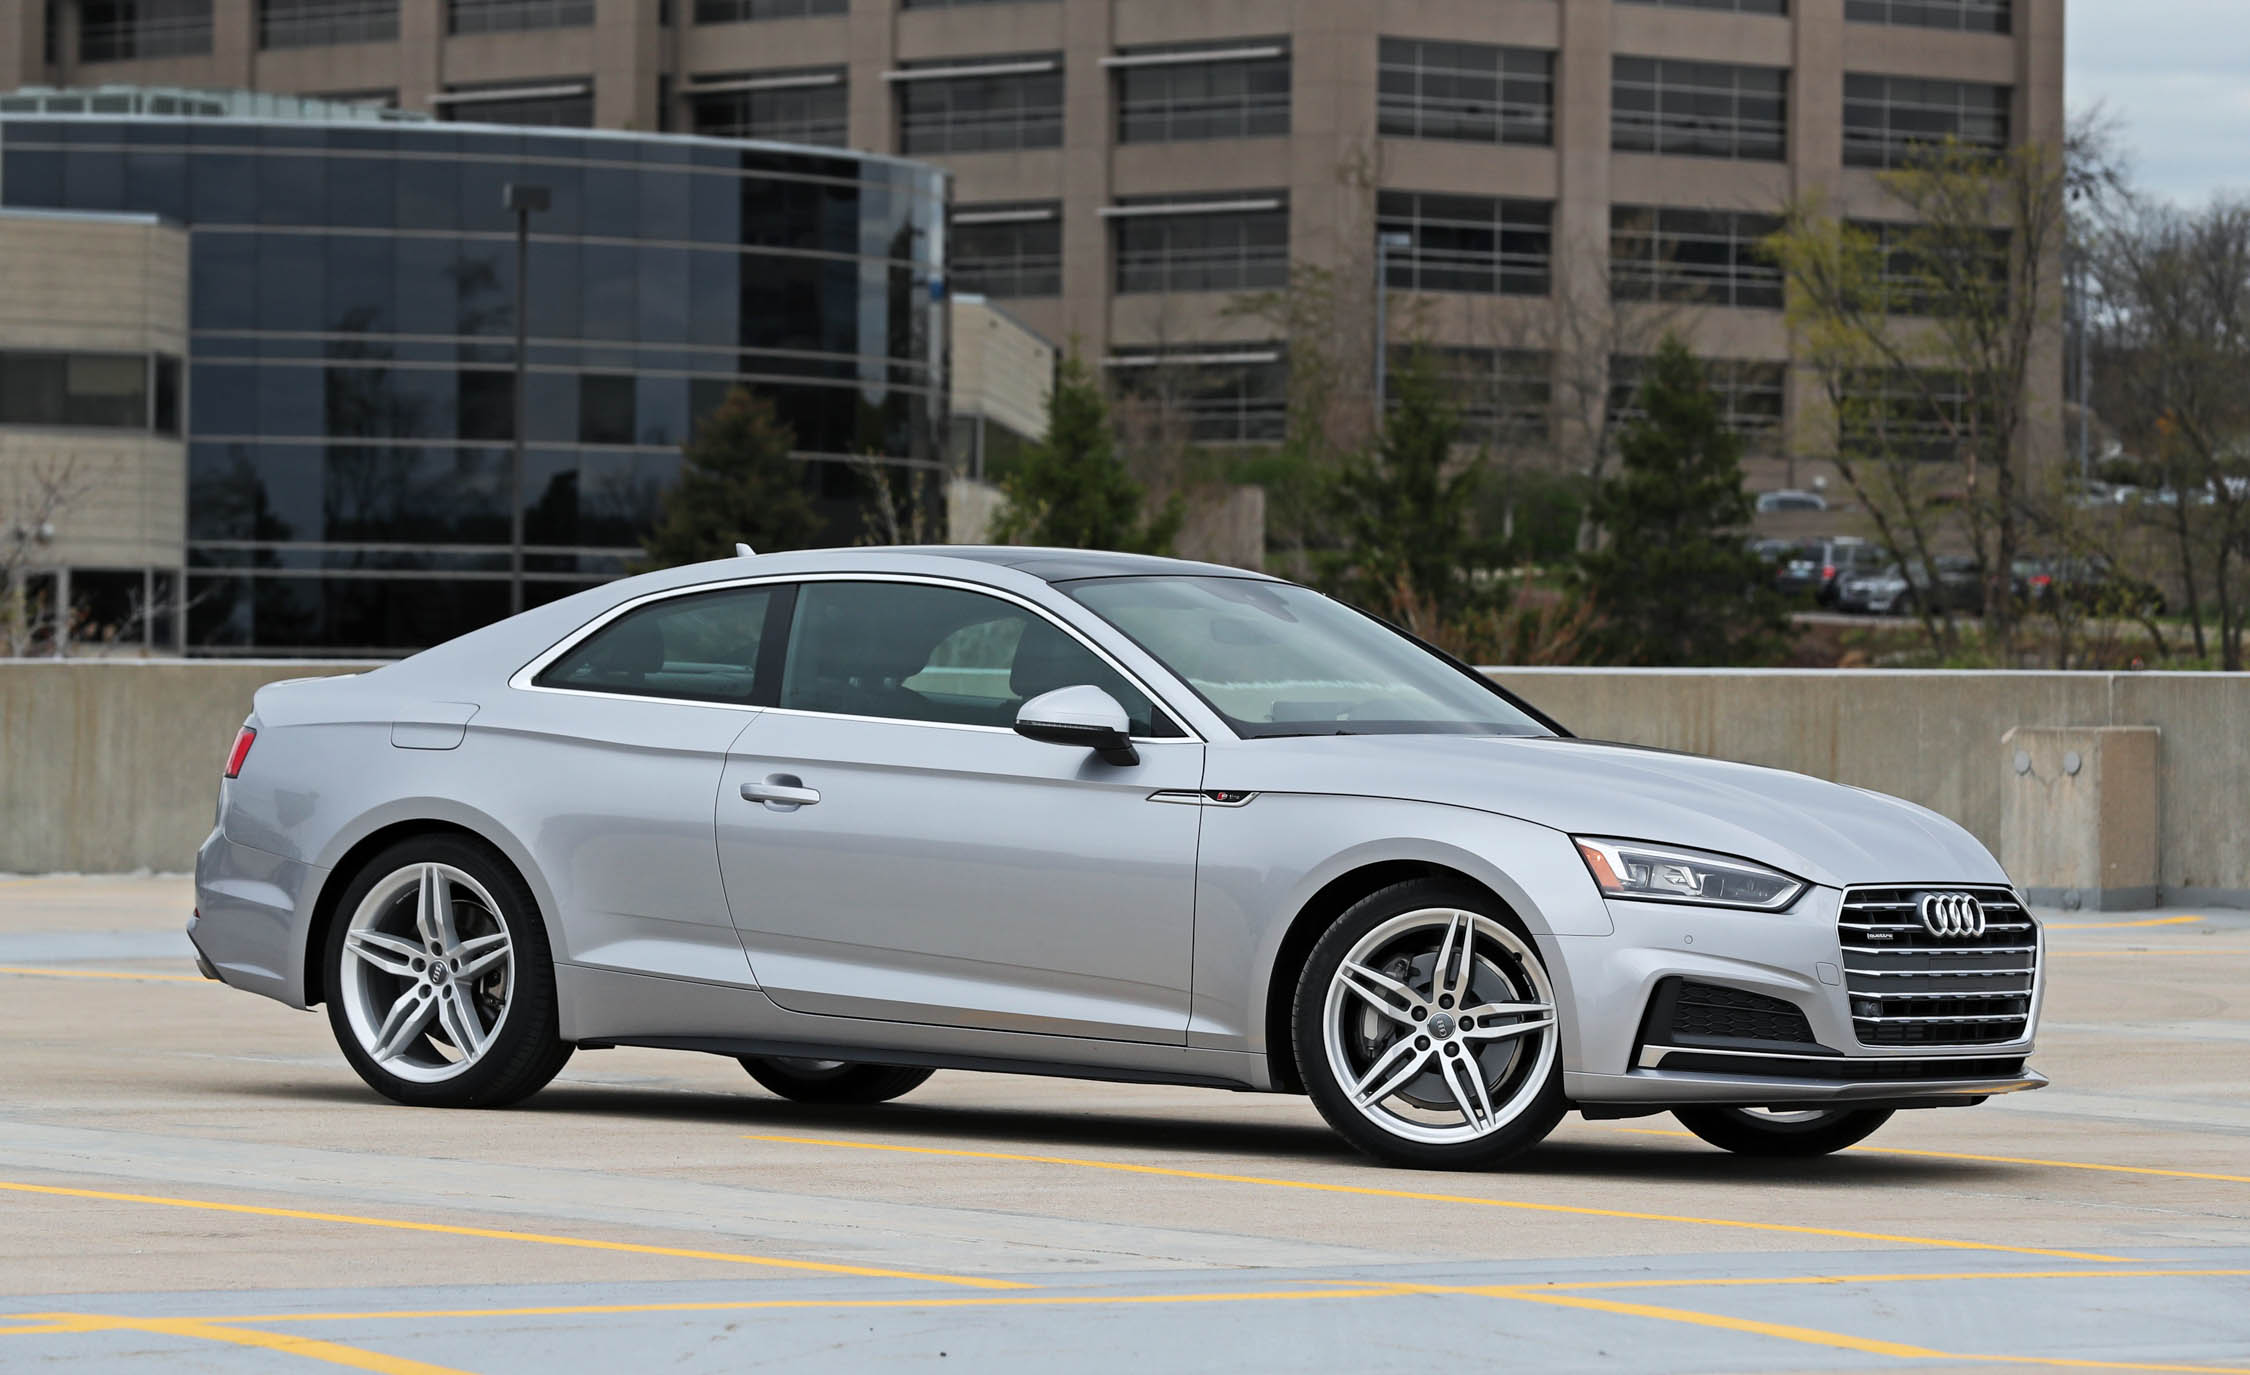 2018 Audi A5 Coupe Exterior Silver Metallic (Photo 41 of 50)